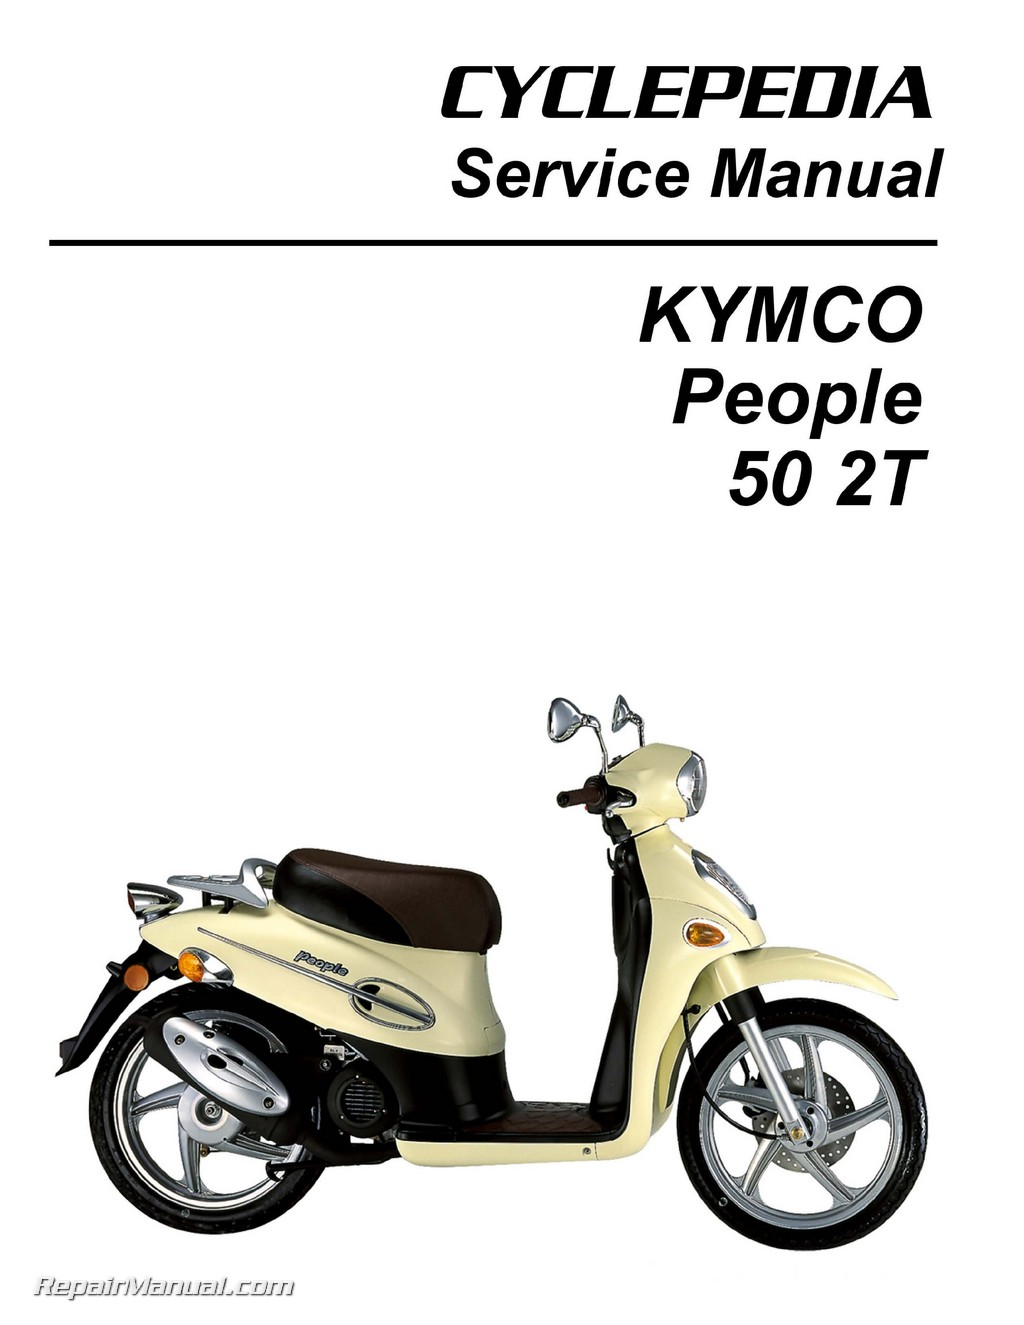 kymco people 50 scooter printed service manual 800 426 4214